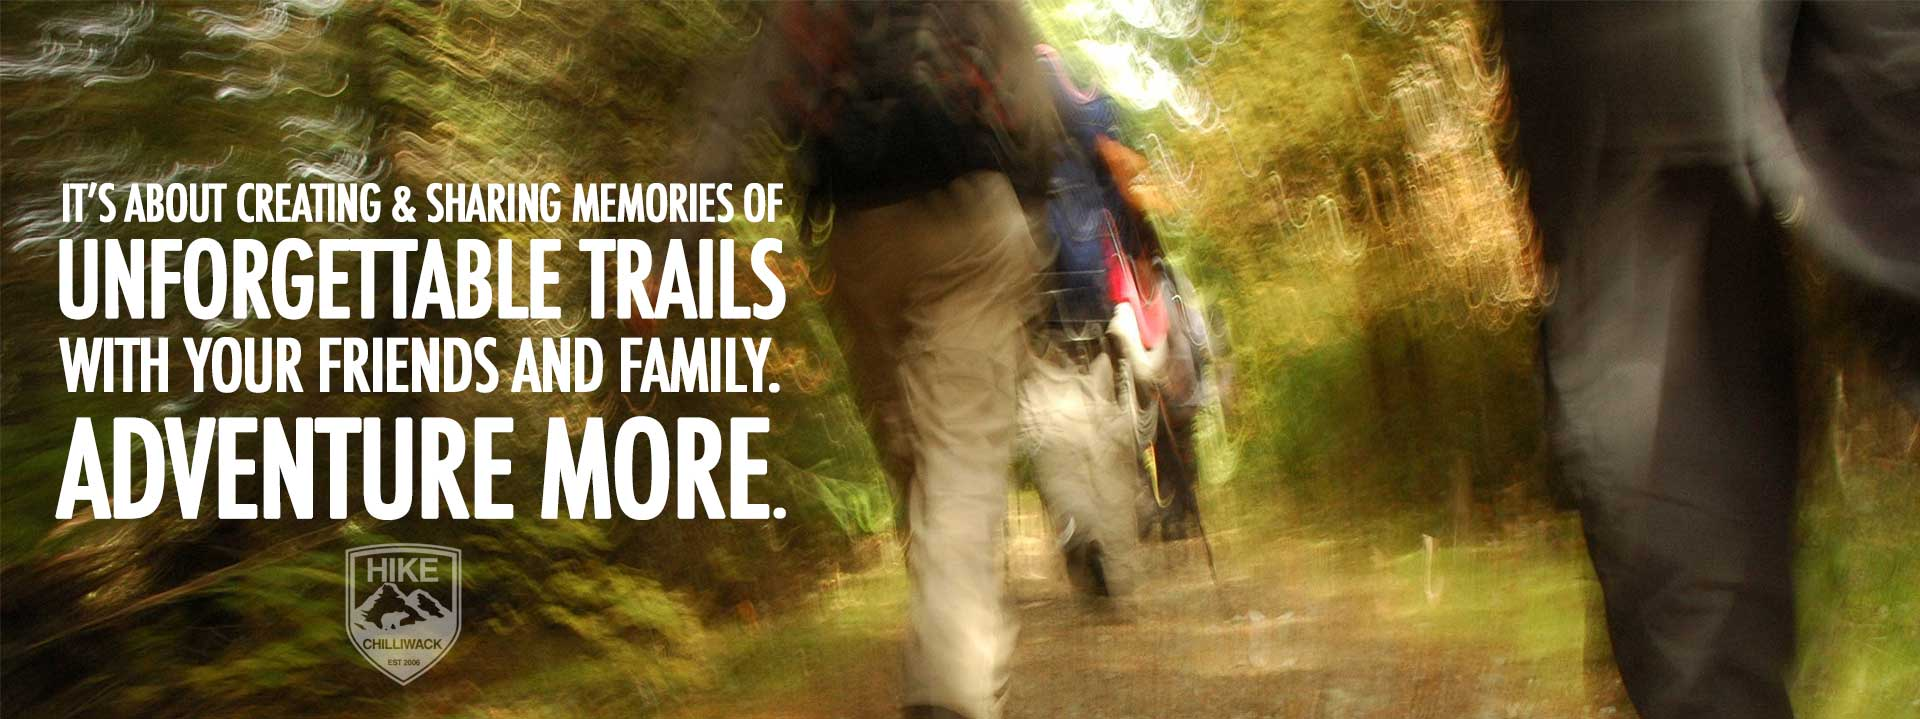 About Hike Chilliwack. Adventure more.